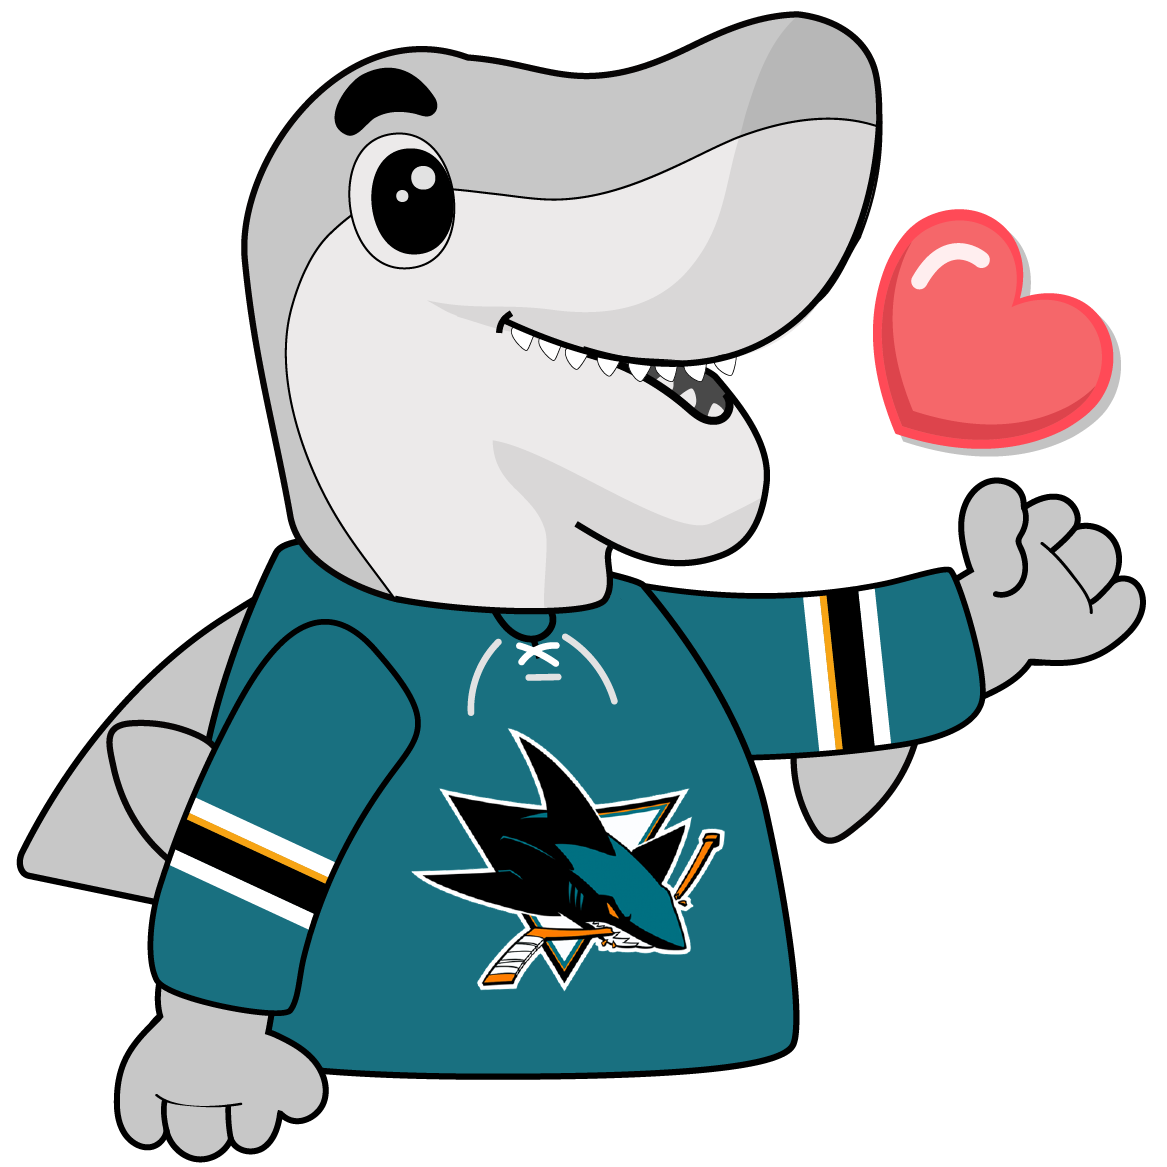 S.J. Sharkie Sticker Pack messages sticker-5